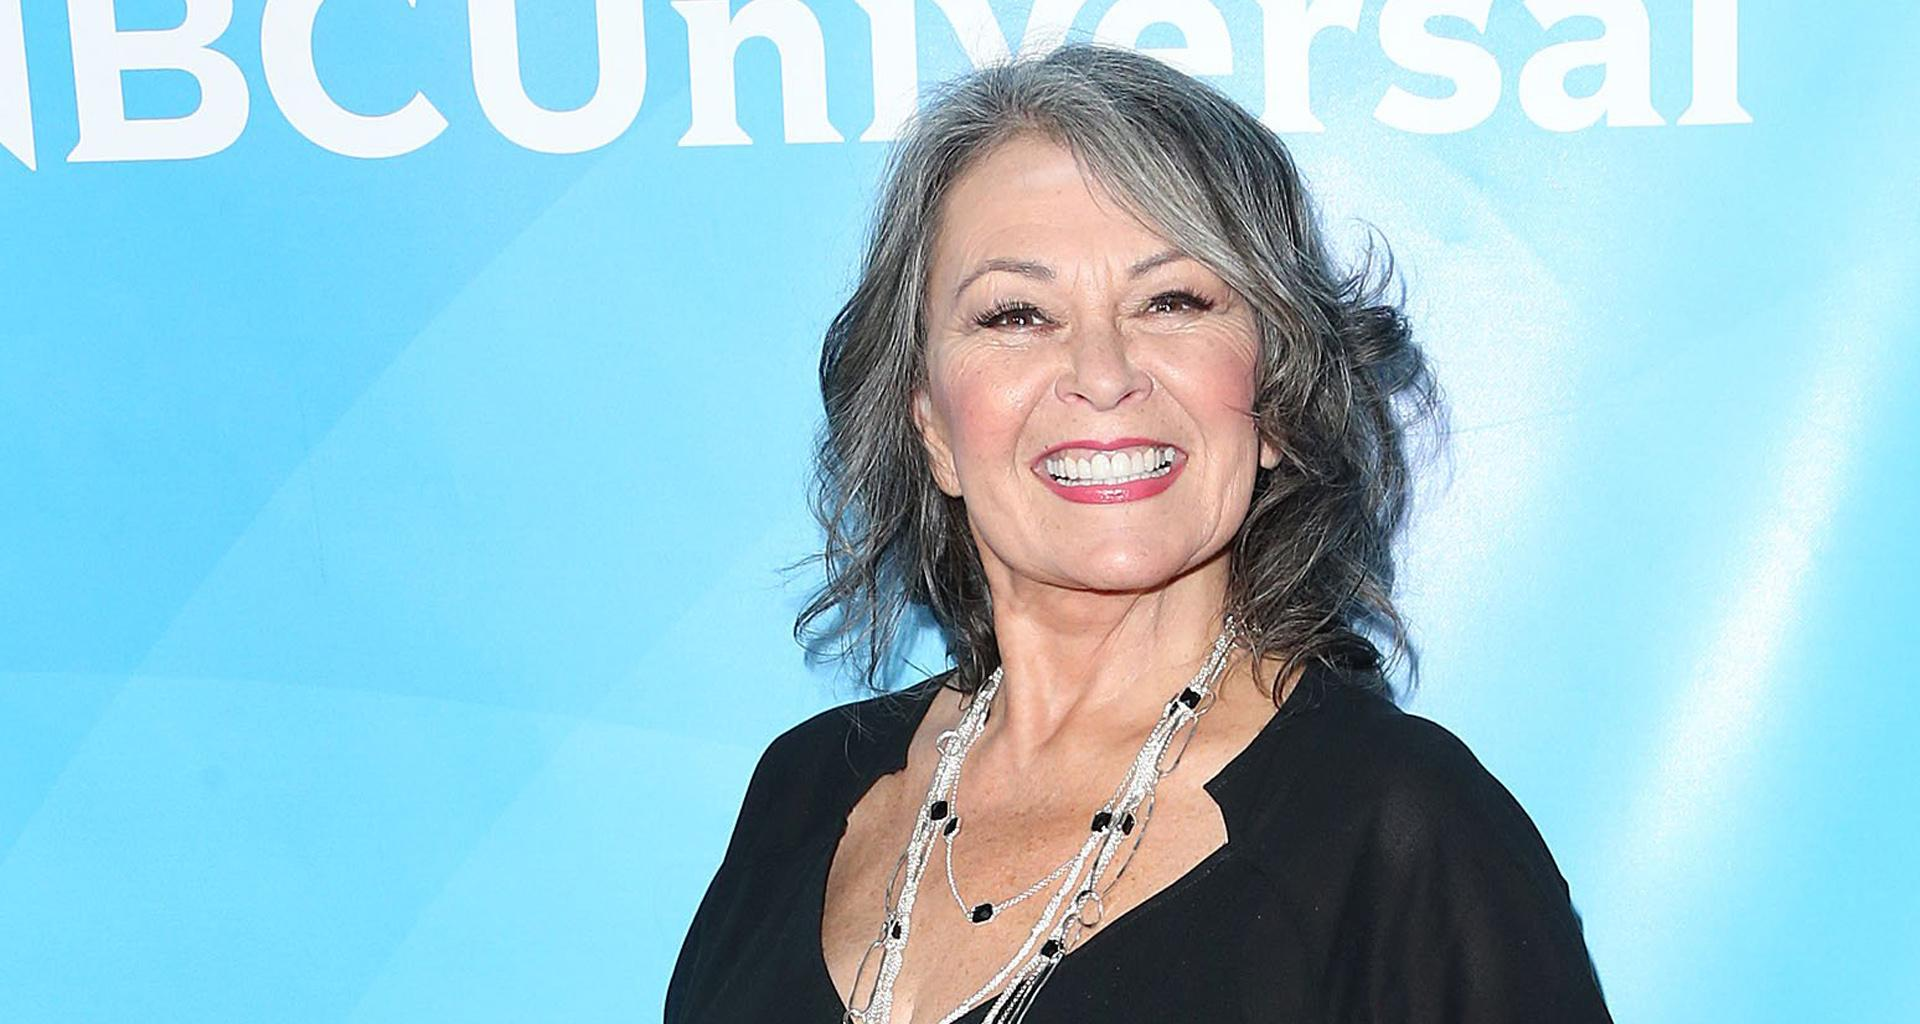 Roseanne Barr Calls #MeToo Victims 'Hos' In Shocking Interview - Says Christine Blasey Ford Must Be Put Behind Bars!